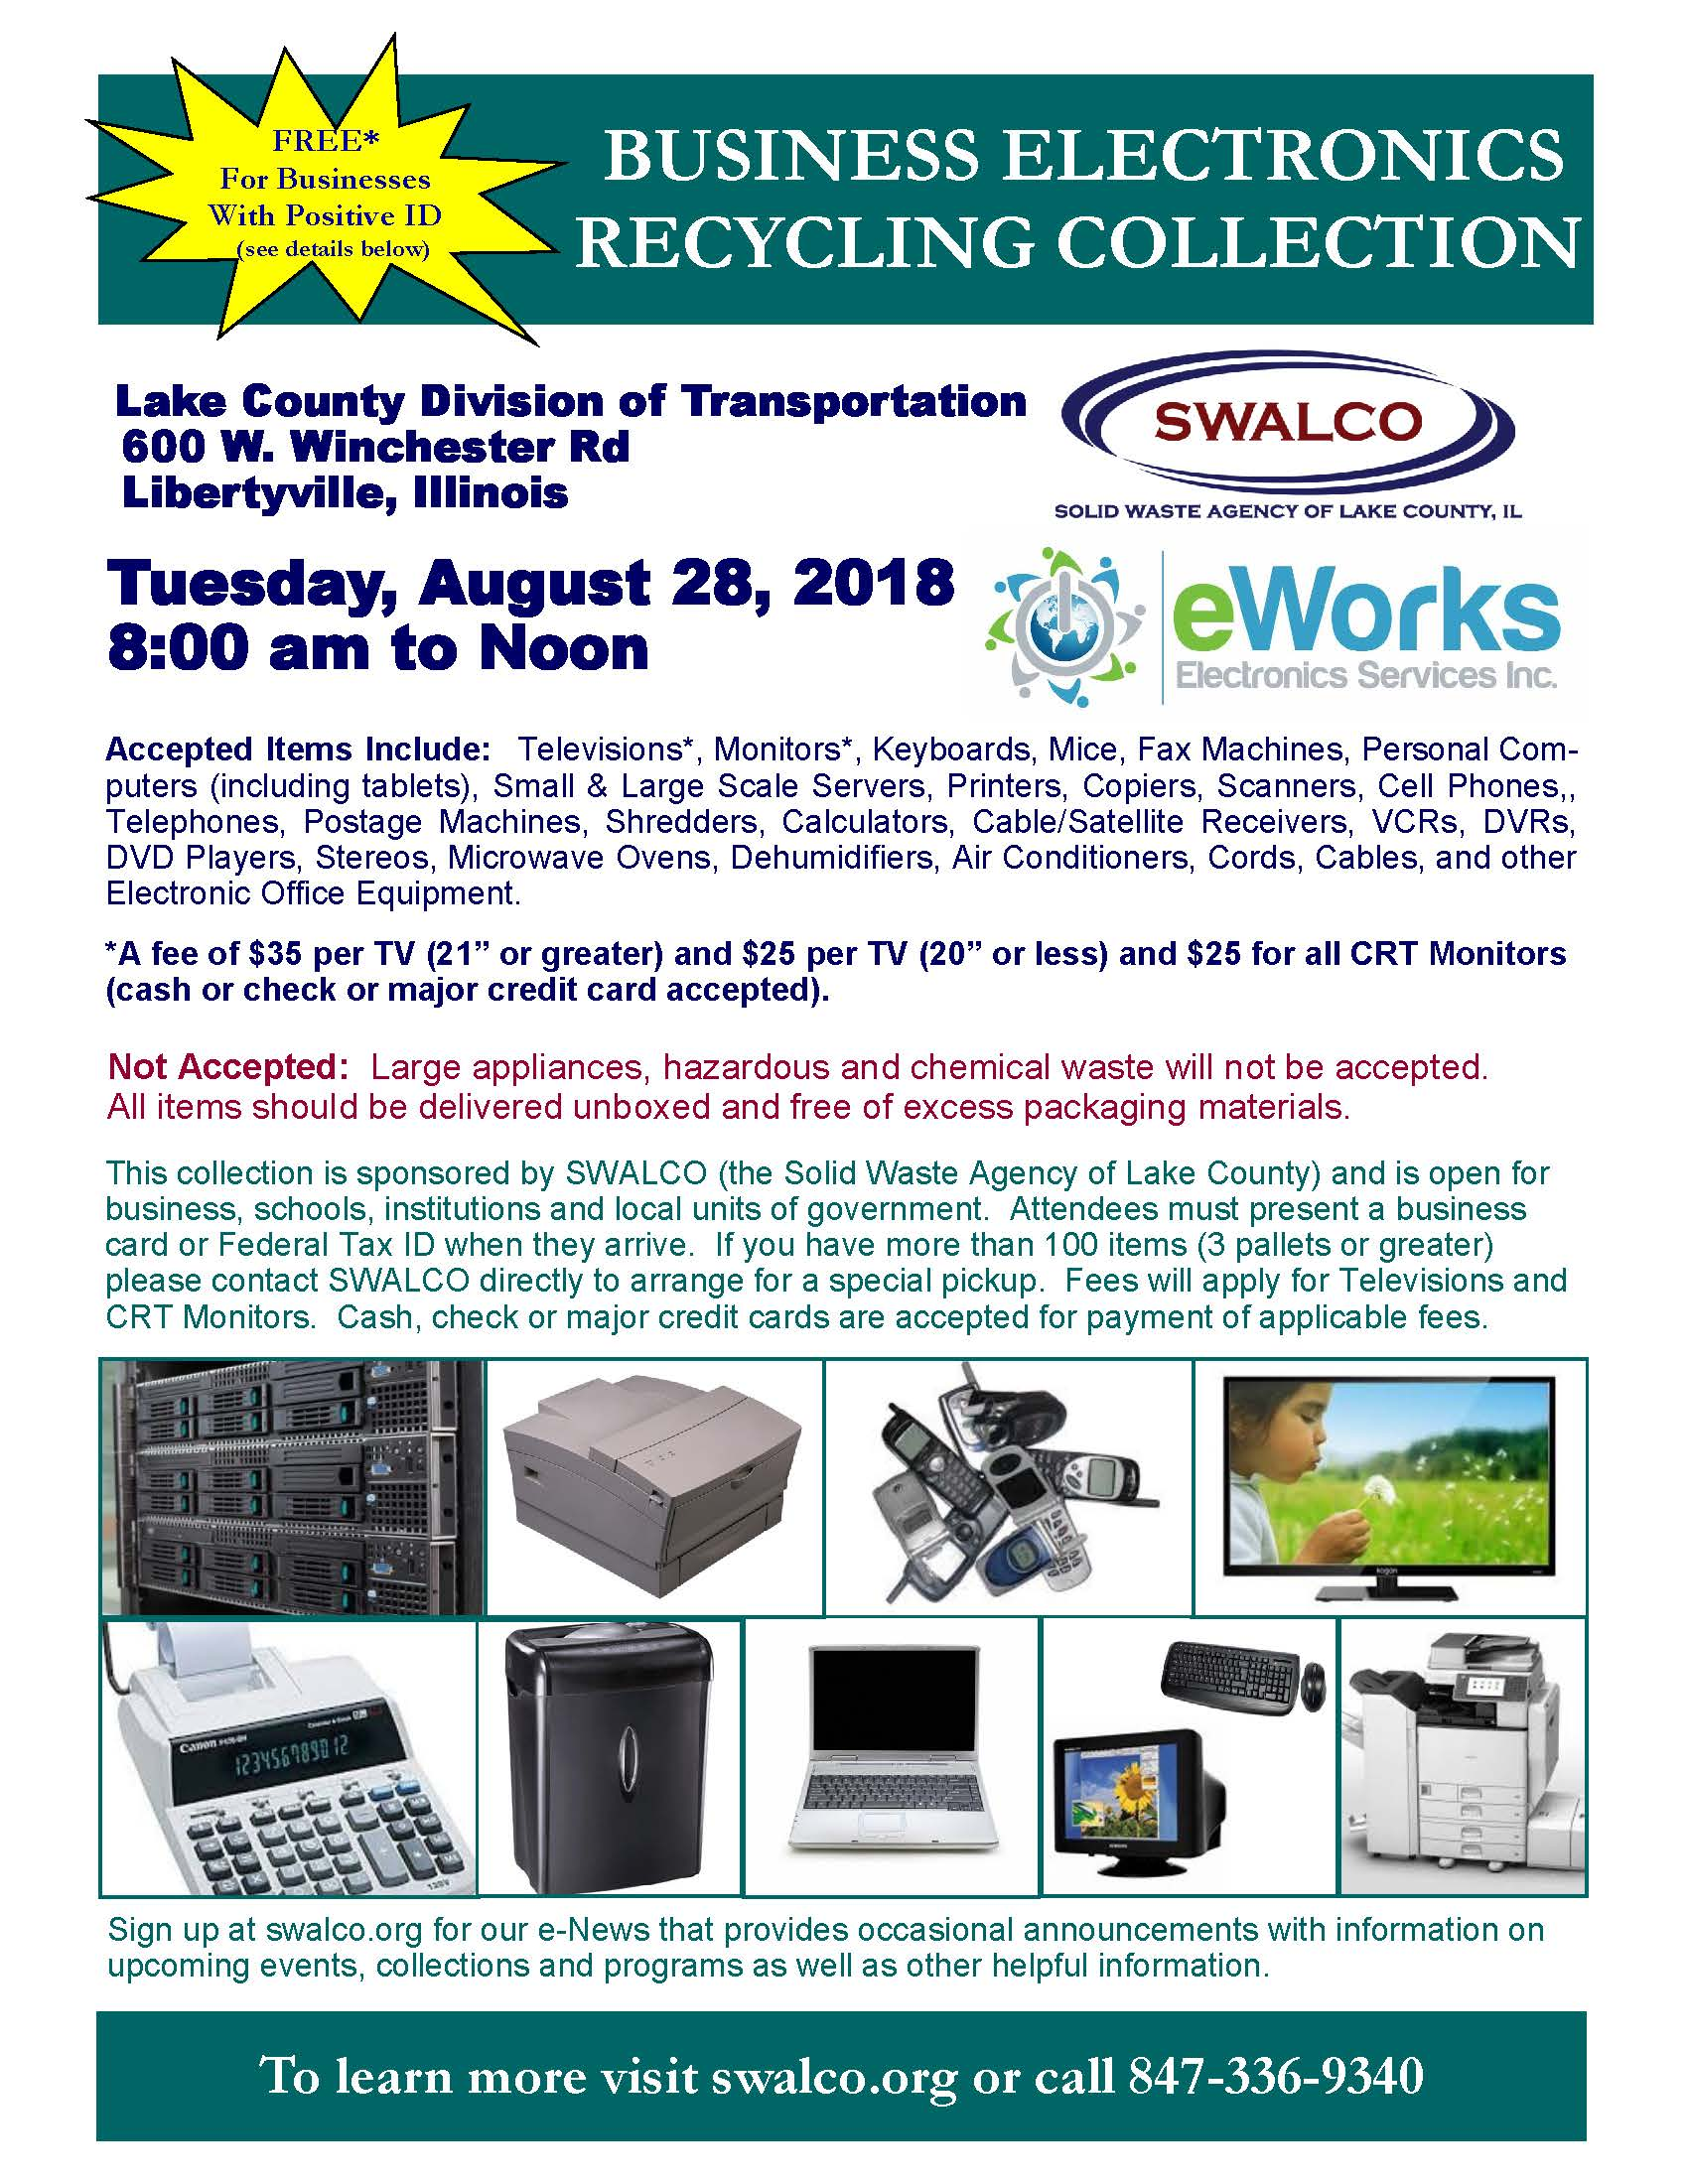 Electronics E-Works LCDOT August 28 2018